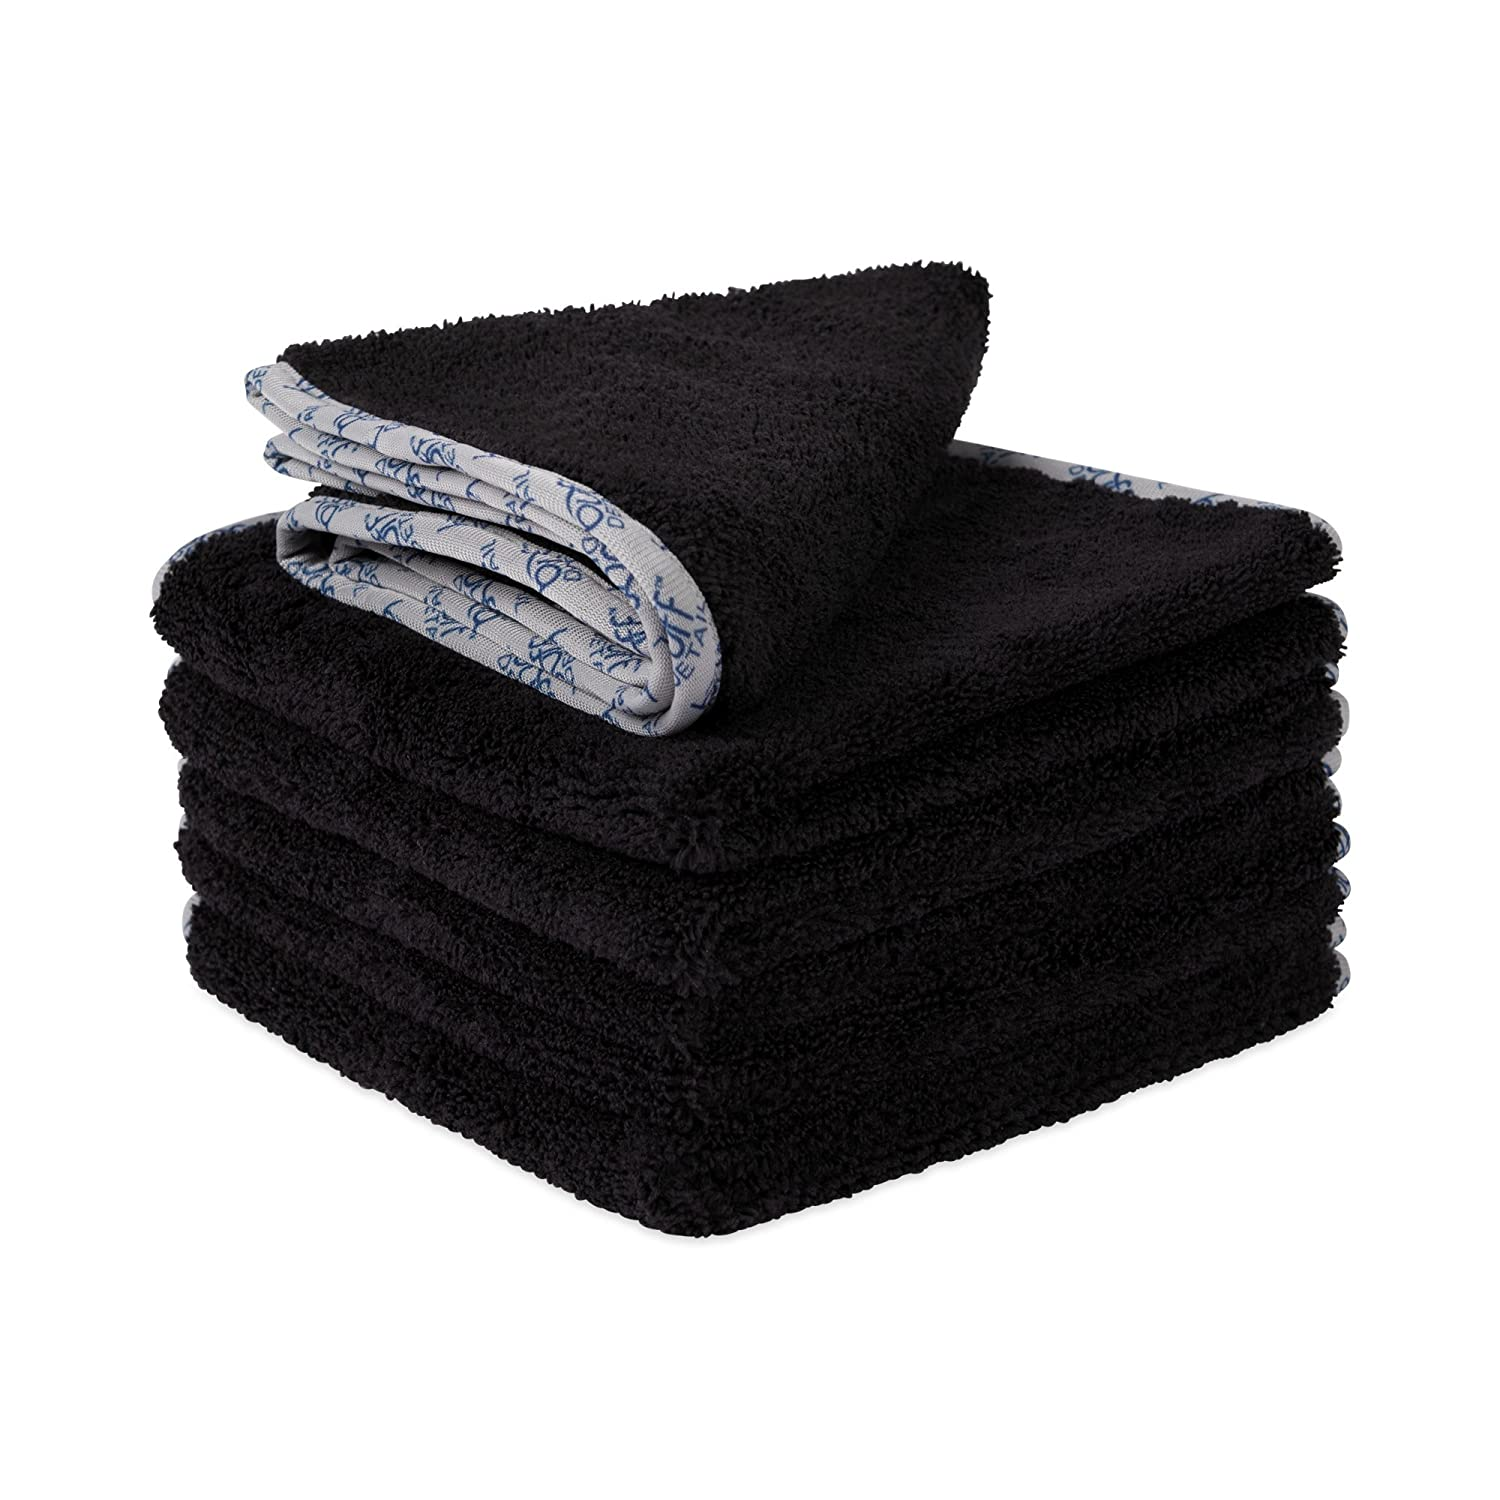 Buff Detail 400 Automotive Microfiber Towel | All-Purpose Auto Detailing - Wax, Buff, Polish, Wash, Dry | Soft Satin Piped Edges | Streak Free Shine | 16'x16' | 6 Pack (Black) Dry | Soft Satin Piped Edges | Streak Free Shine | 16x16 | 6 Pack (Black)